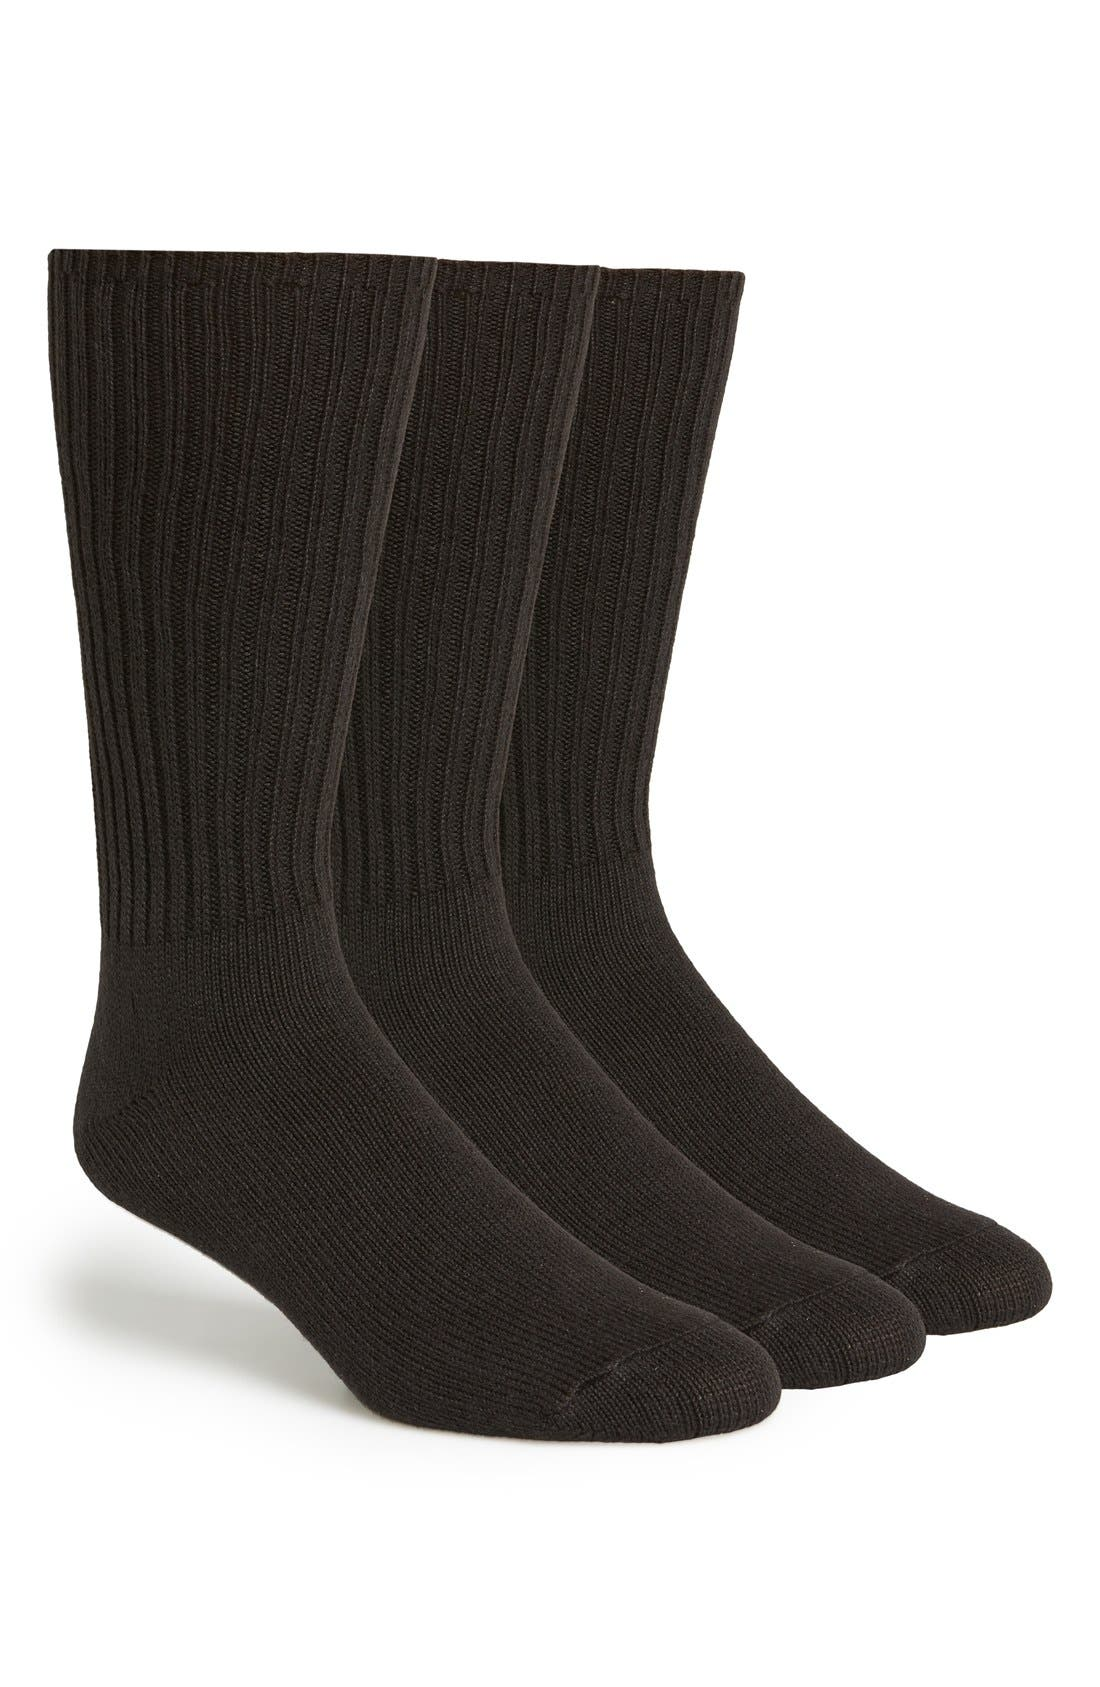 Main Image - Calvin Klein 3-Pack Casual Socks